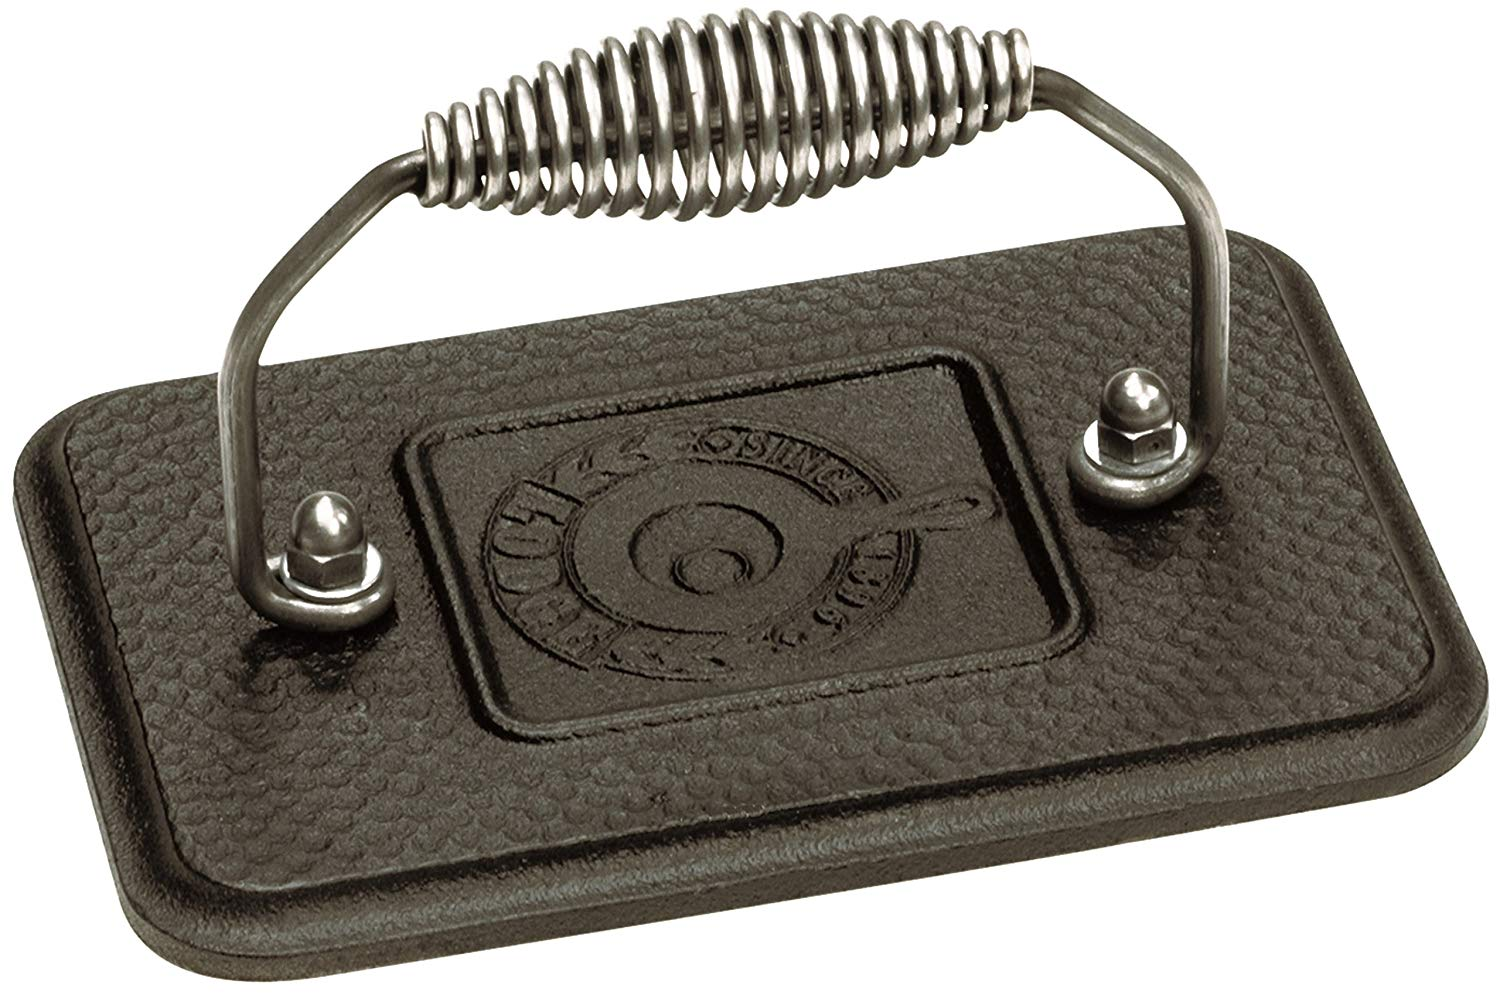 lodge-rectangular-cast-iron-grill-press